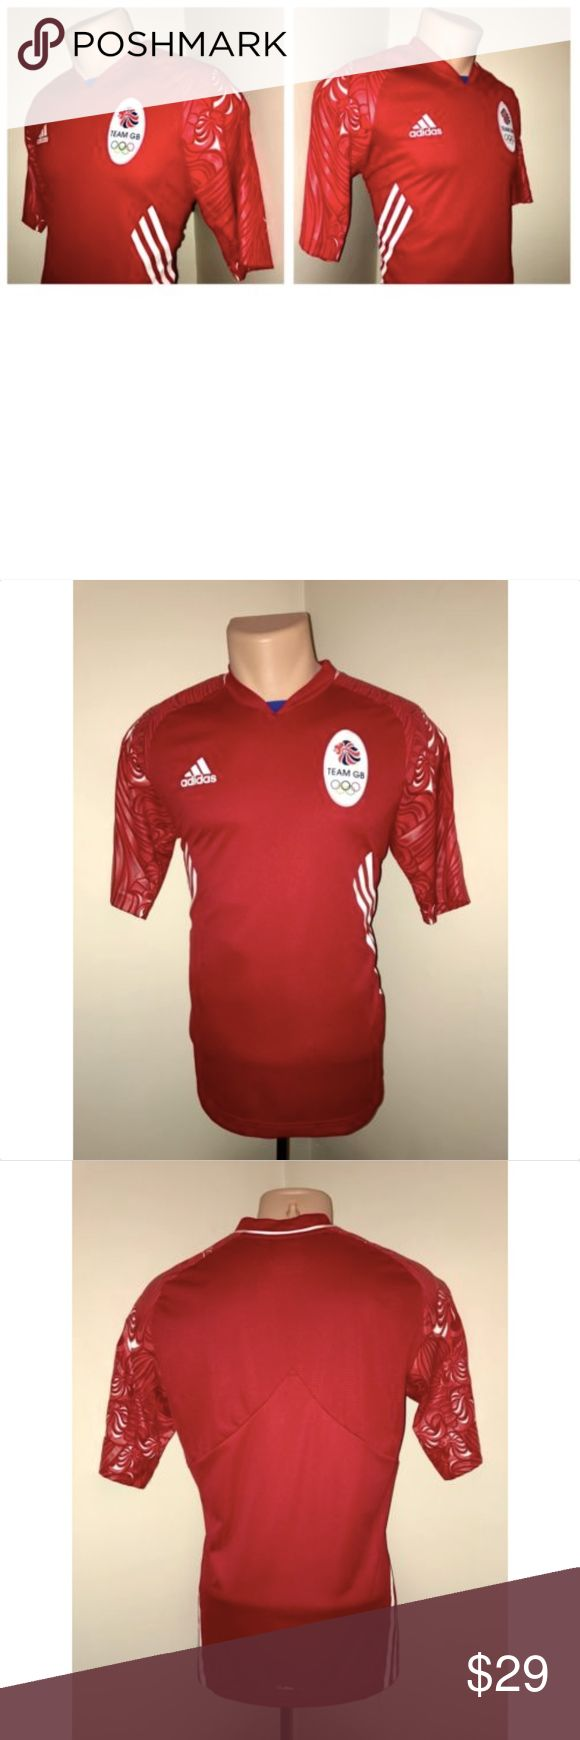 "2012 Olympics Team Great Britain Football Jersey PLEASE NOTE MEASUREMENTS BELOW TO ENSURE PROPER FIT  Size: Small Color: Red Tag Measurements- S Material: Polyester Condition: Excellent Features: Short sleeve, ClimaCool Technology, Comfortable and lightweight, Rarely worn and no sign of fading or peeling or cracking of the design on the sleeves Flaws: One very small stitch flaw on the bottom front, less than 1'16"" (see photo) Not noticeable.  Measurements:  Chest - 19.5 inches  Shoulder to…"